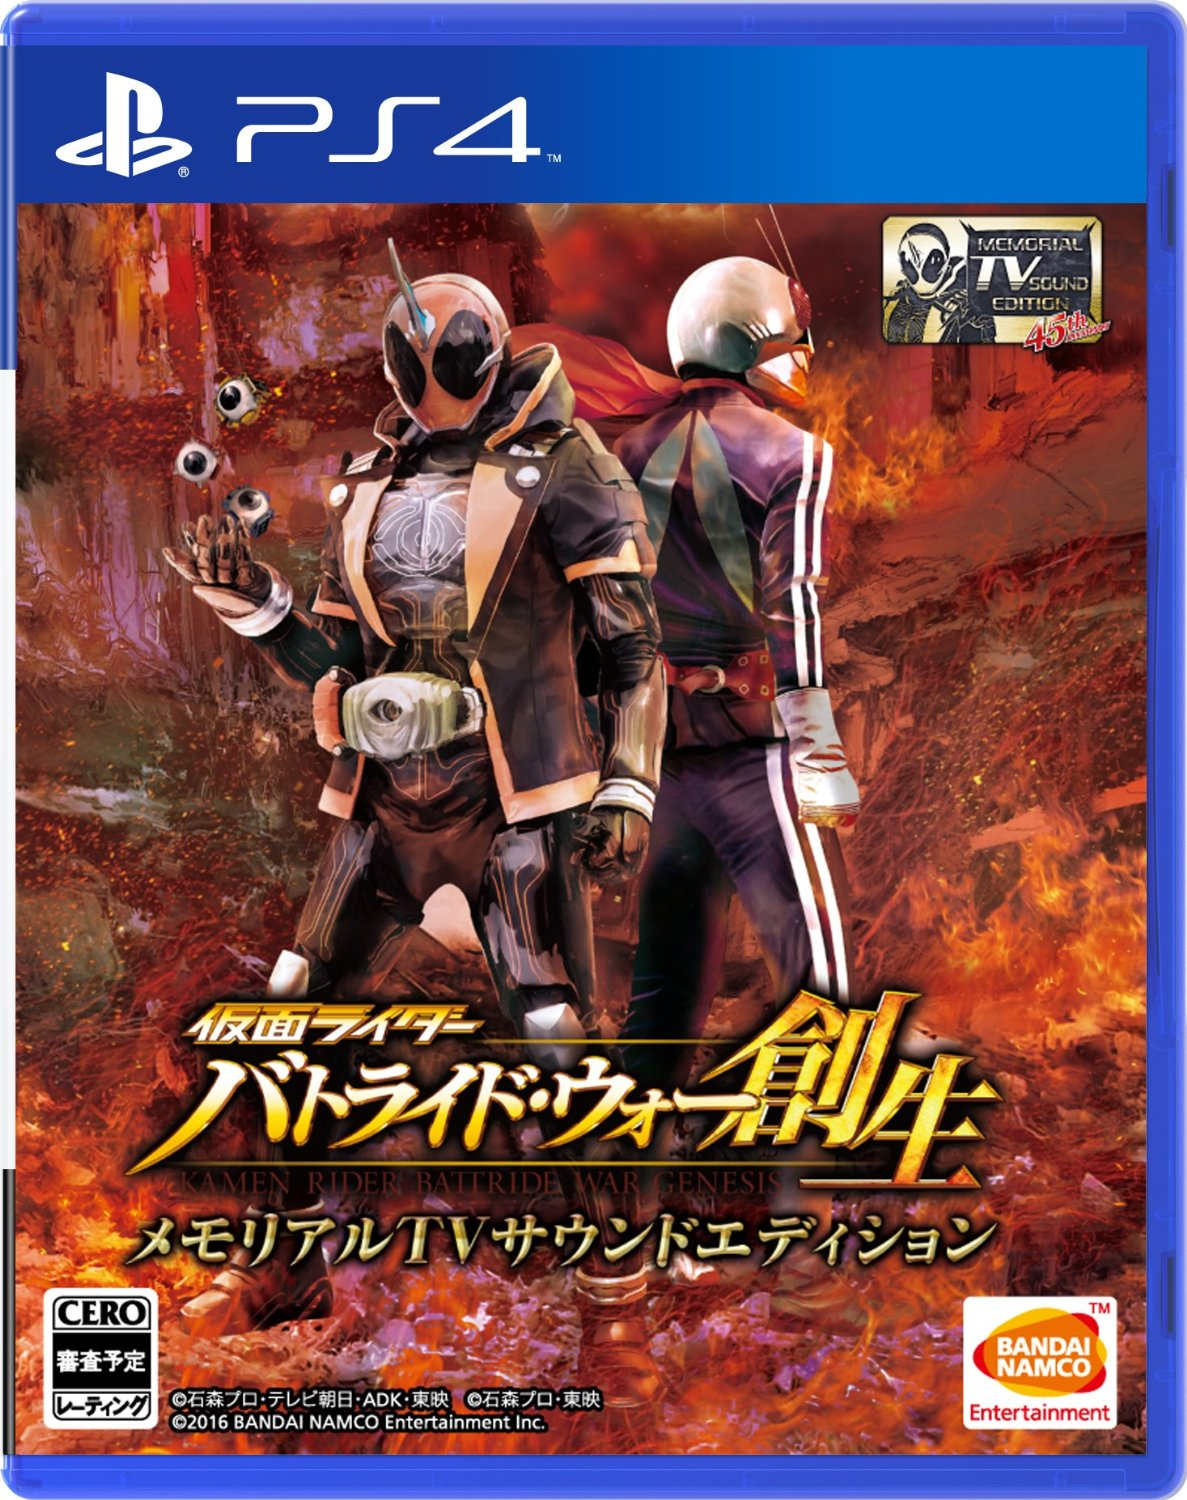 PS4 Kamen Rider Battride War Genesis (PlayStation 4) JPN